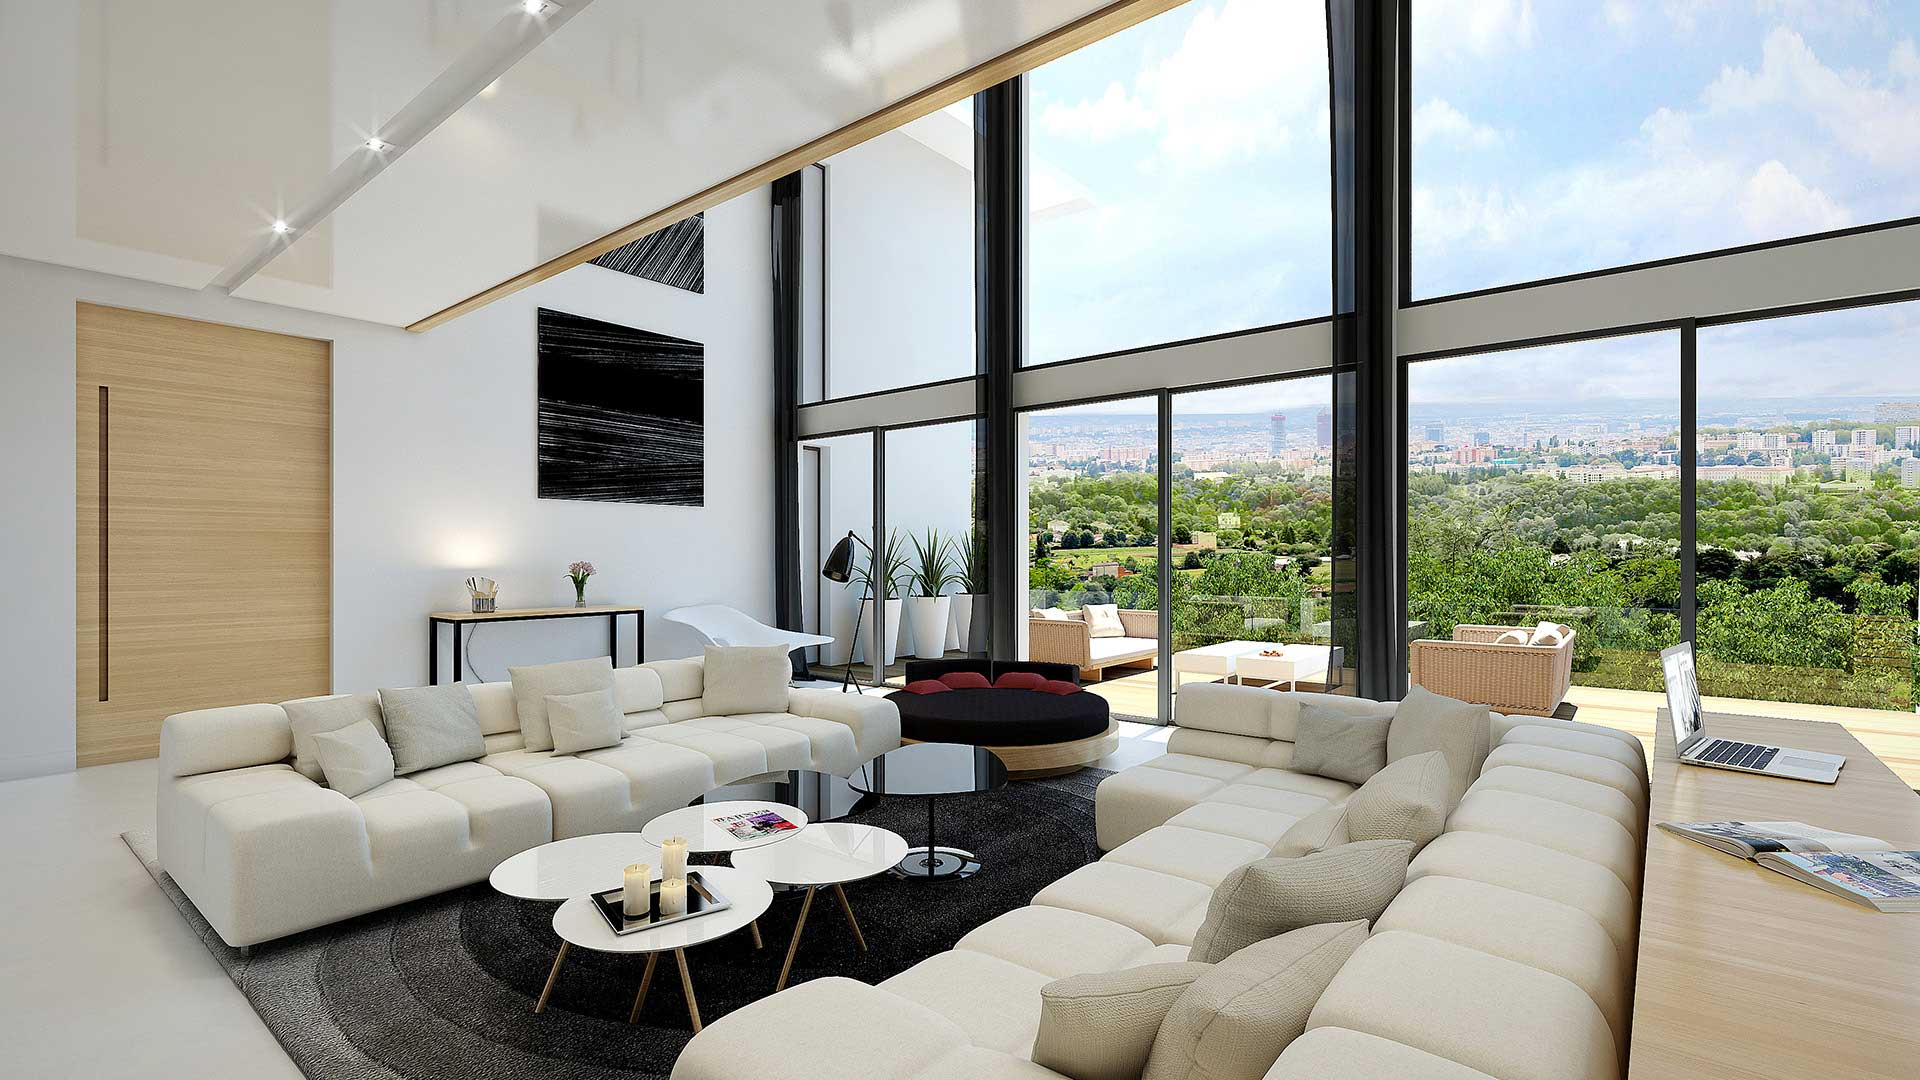 View architect 3D of the living room of a villa in Lyon.